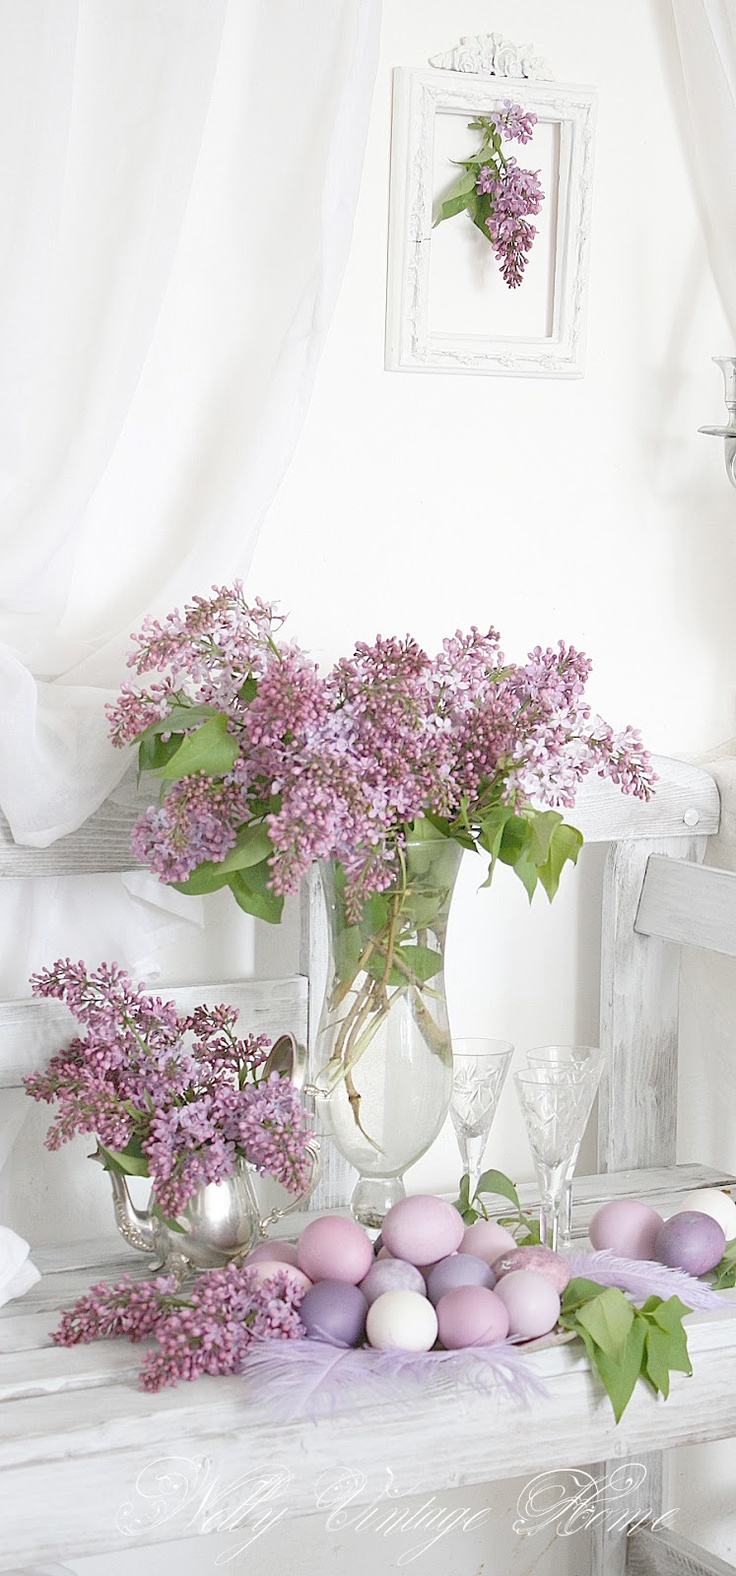 nelly vintage home: Easter Lilac